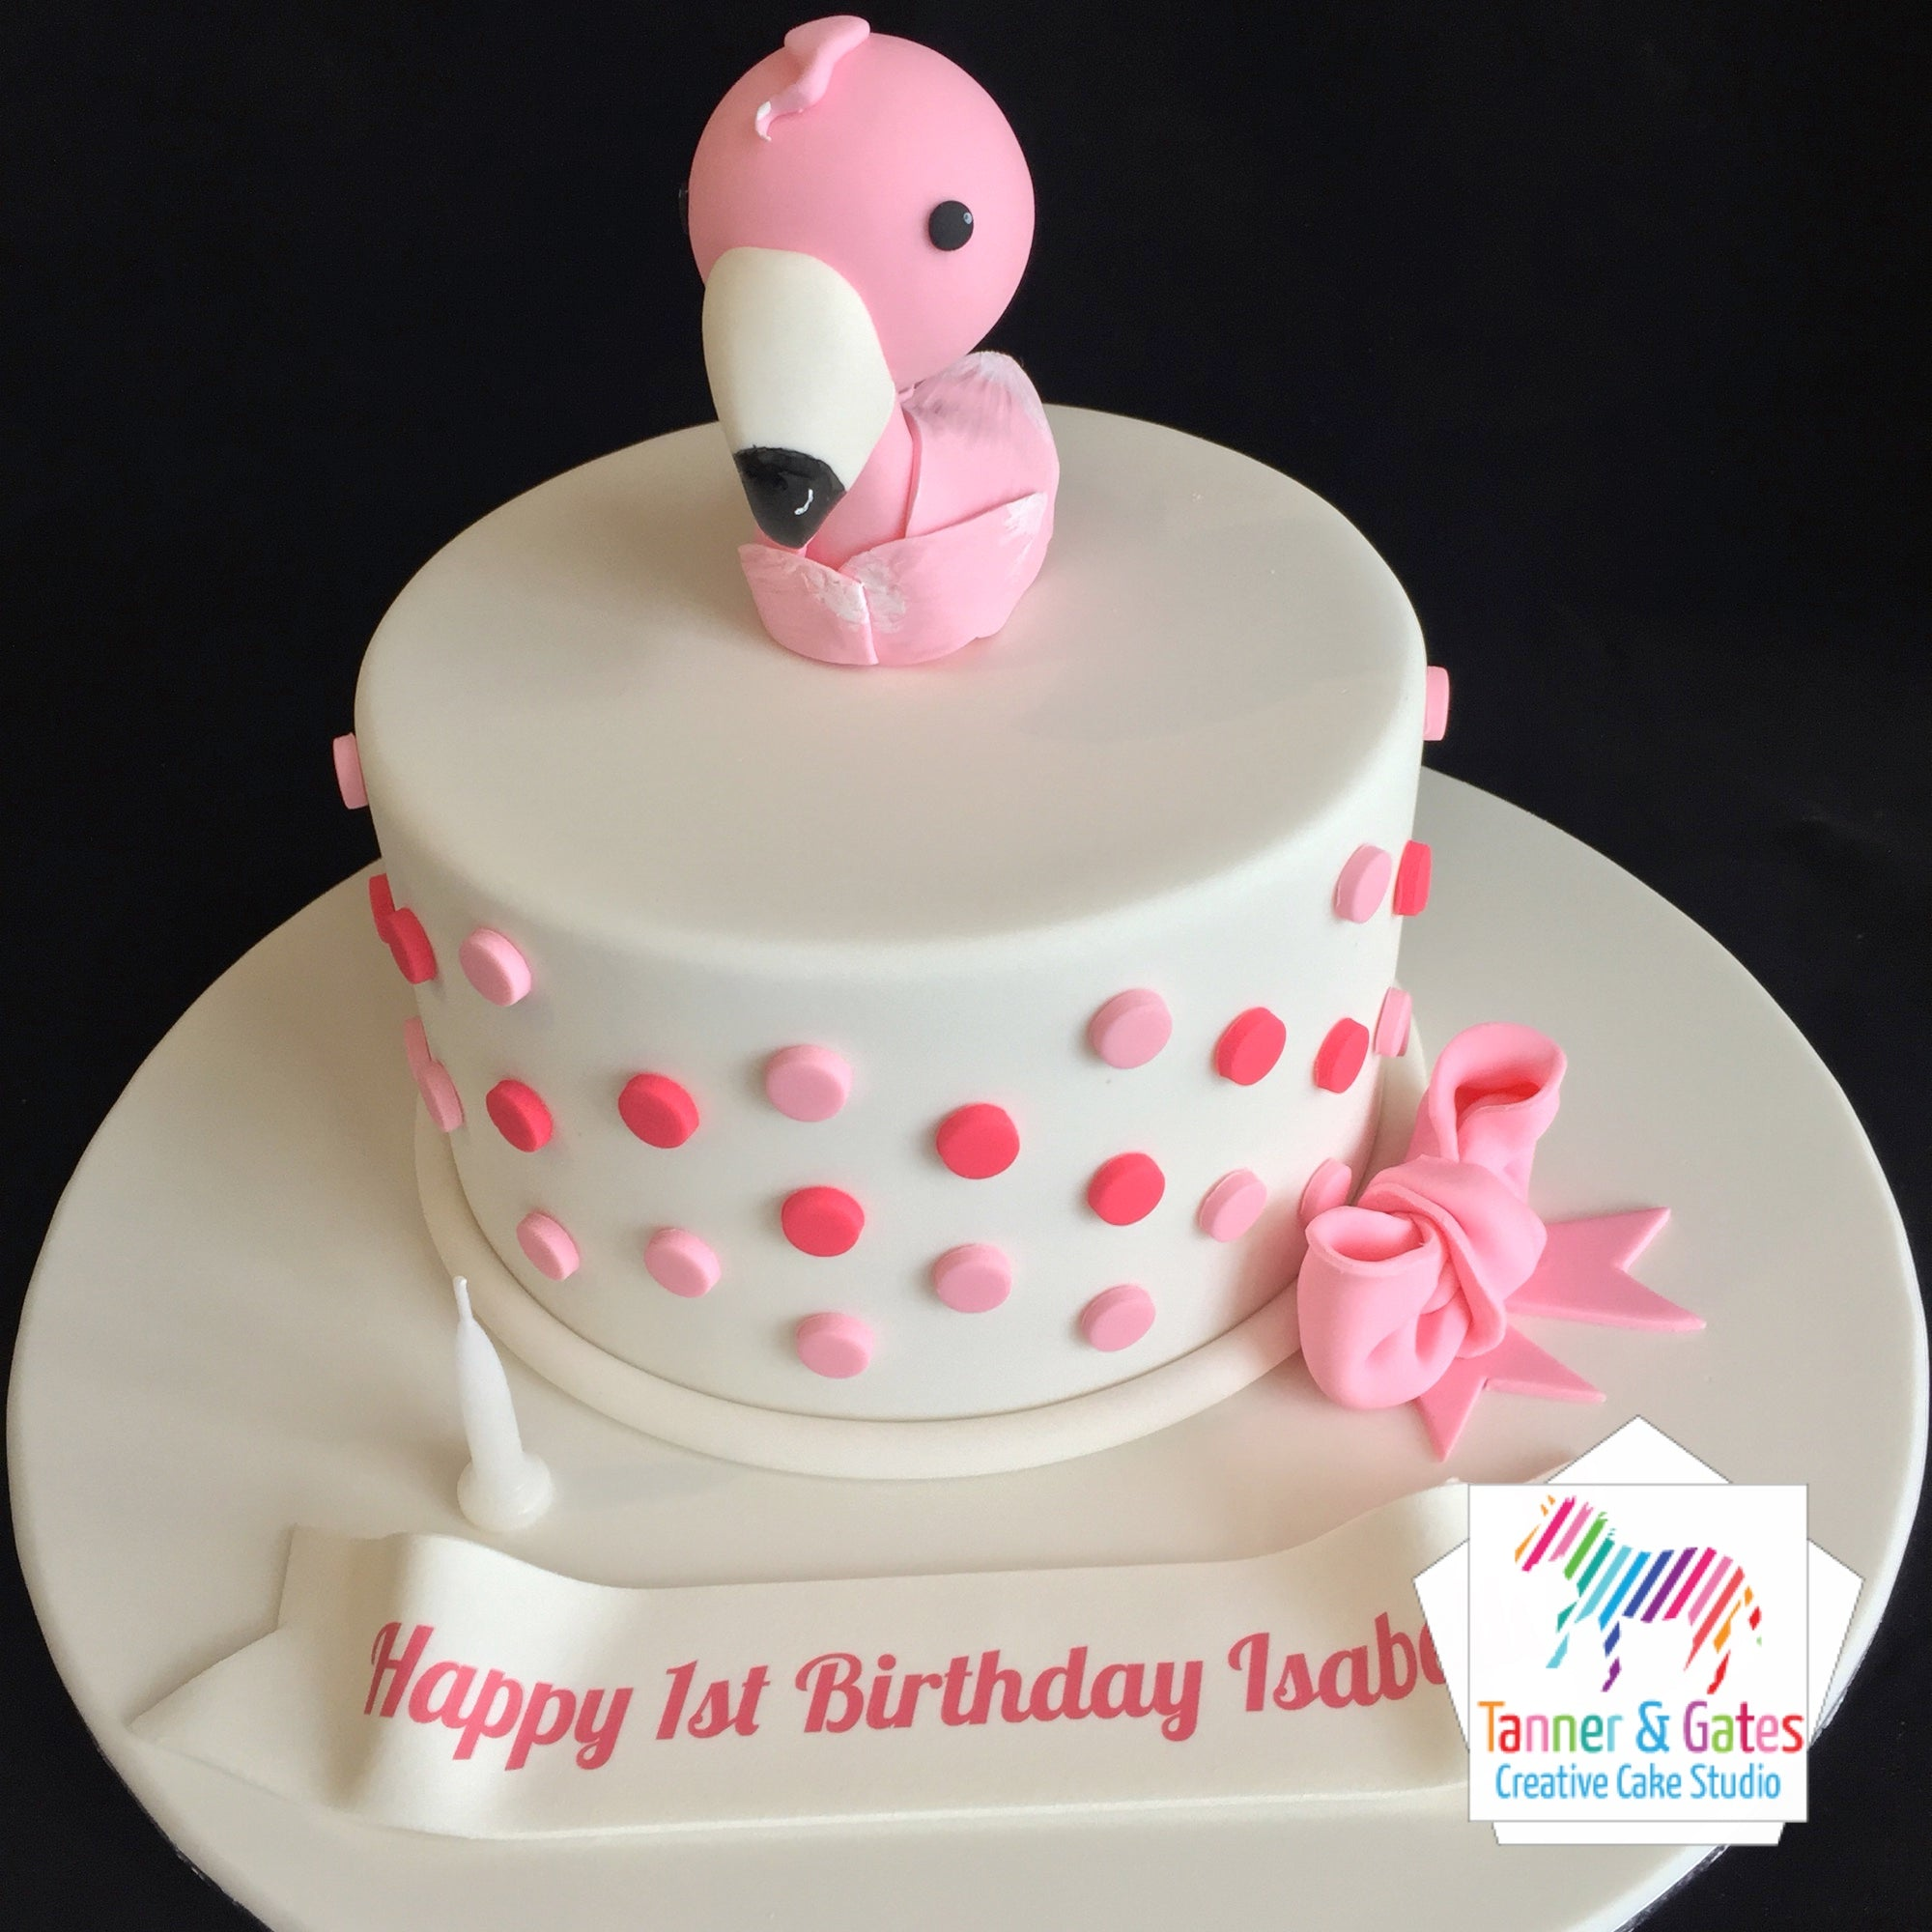 Pleasant Flamingo 1St Birthday Cake Sydney Tanner Gates Personalised Birthday Cards Bromeletsinfo